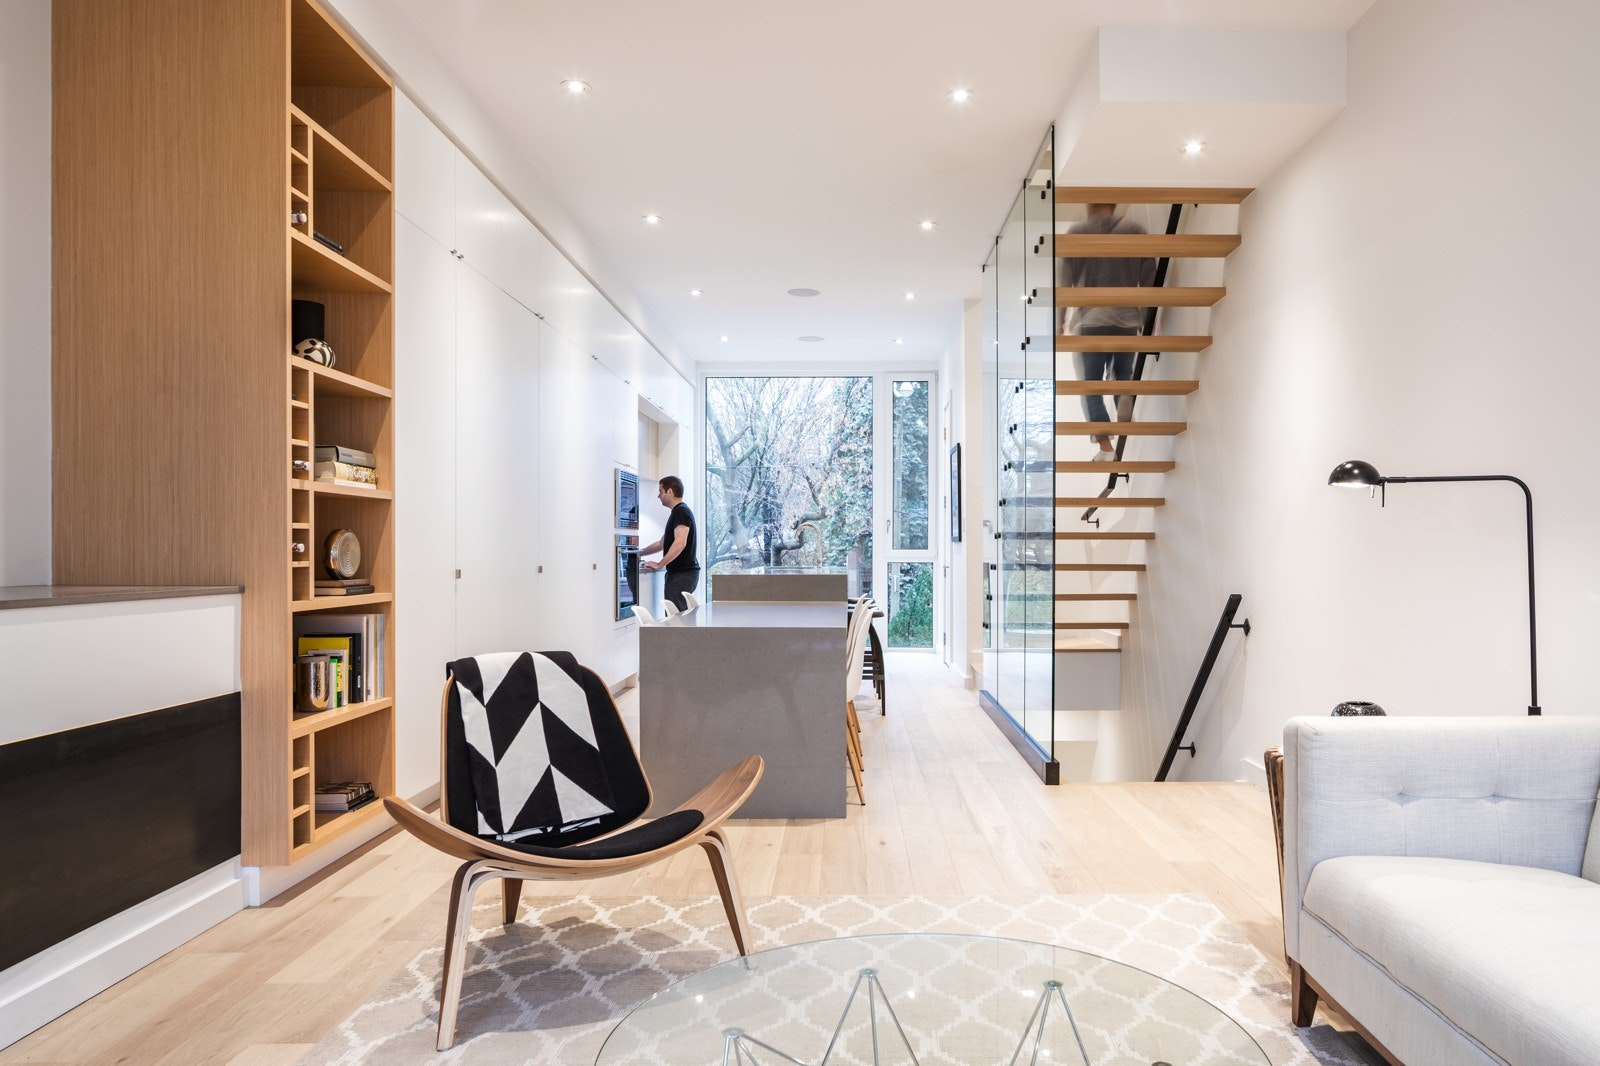 Core modern homes by batay csorbas architects photo doublespace photography